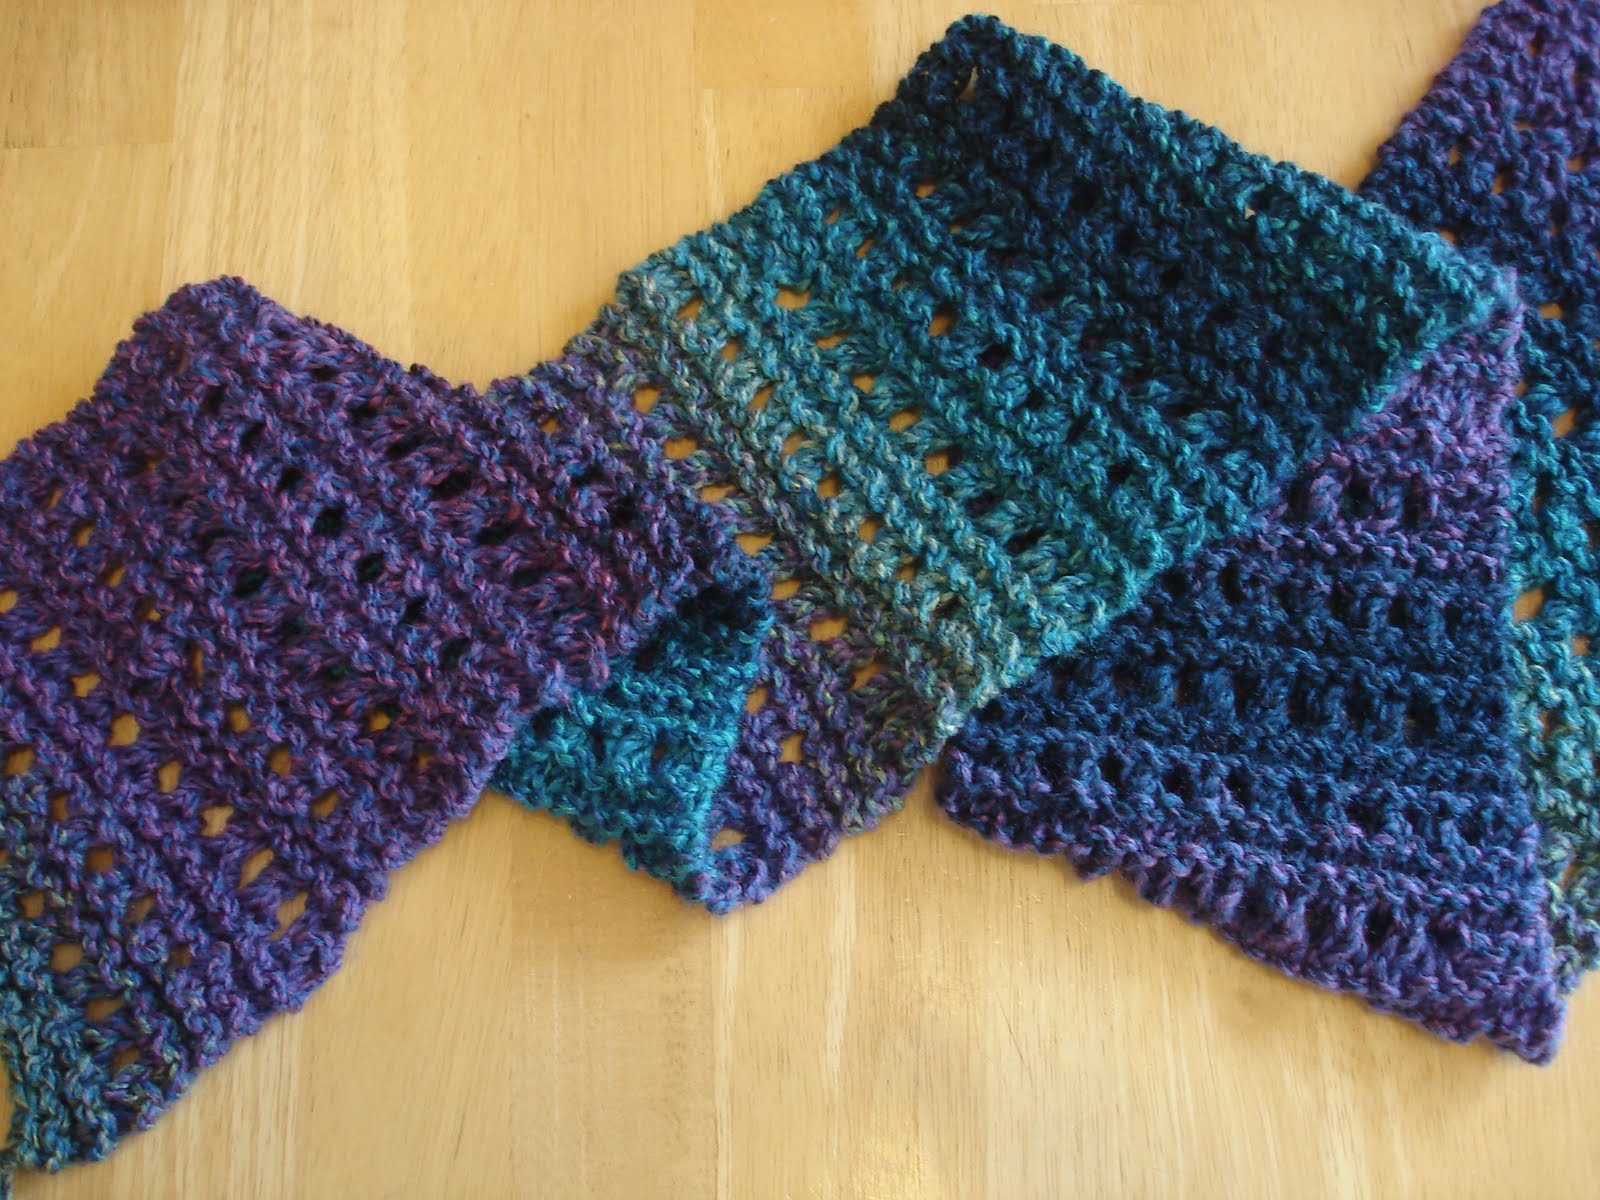 Free Patterns For Knitted Scarves : Fiber Flux: Free Knitting Patterns